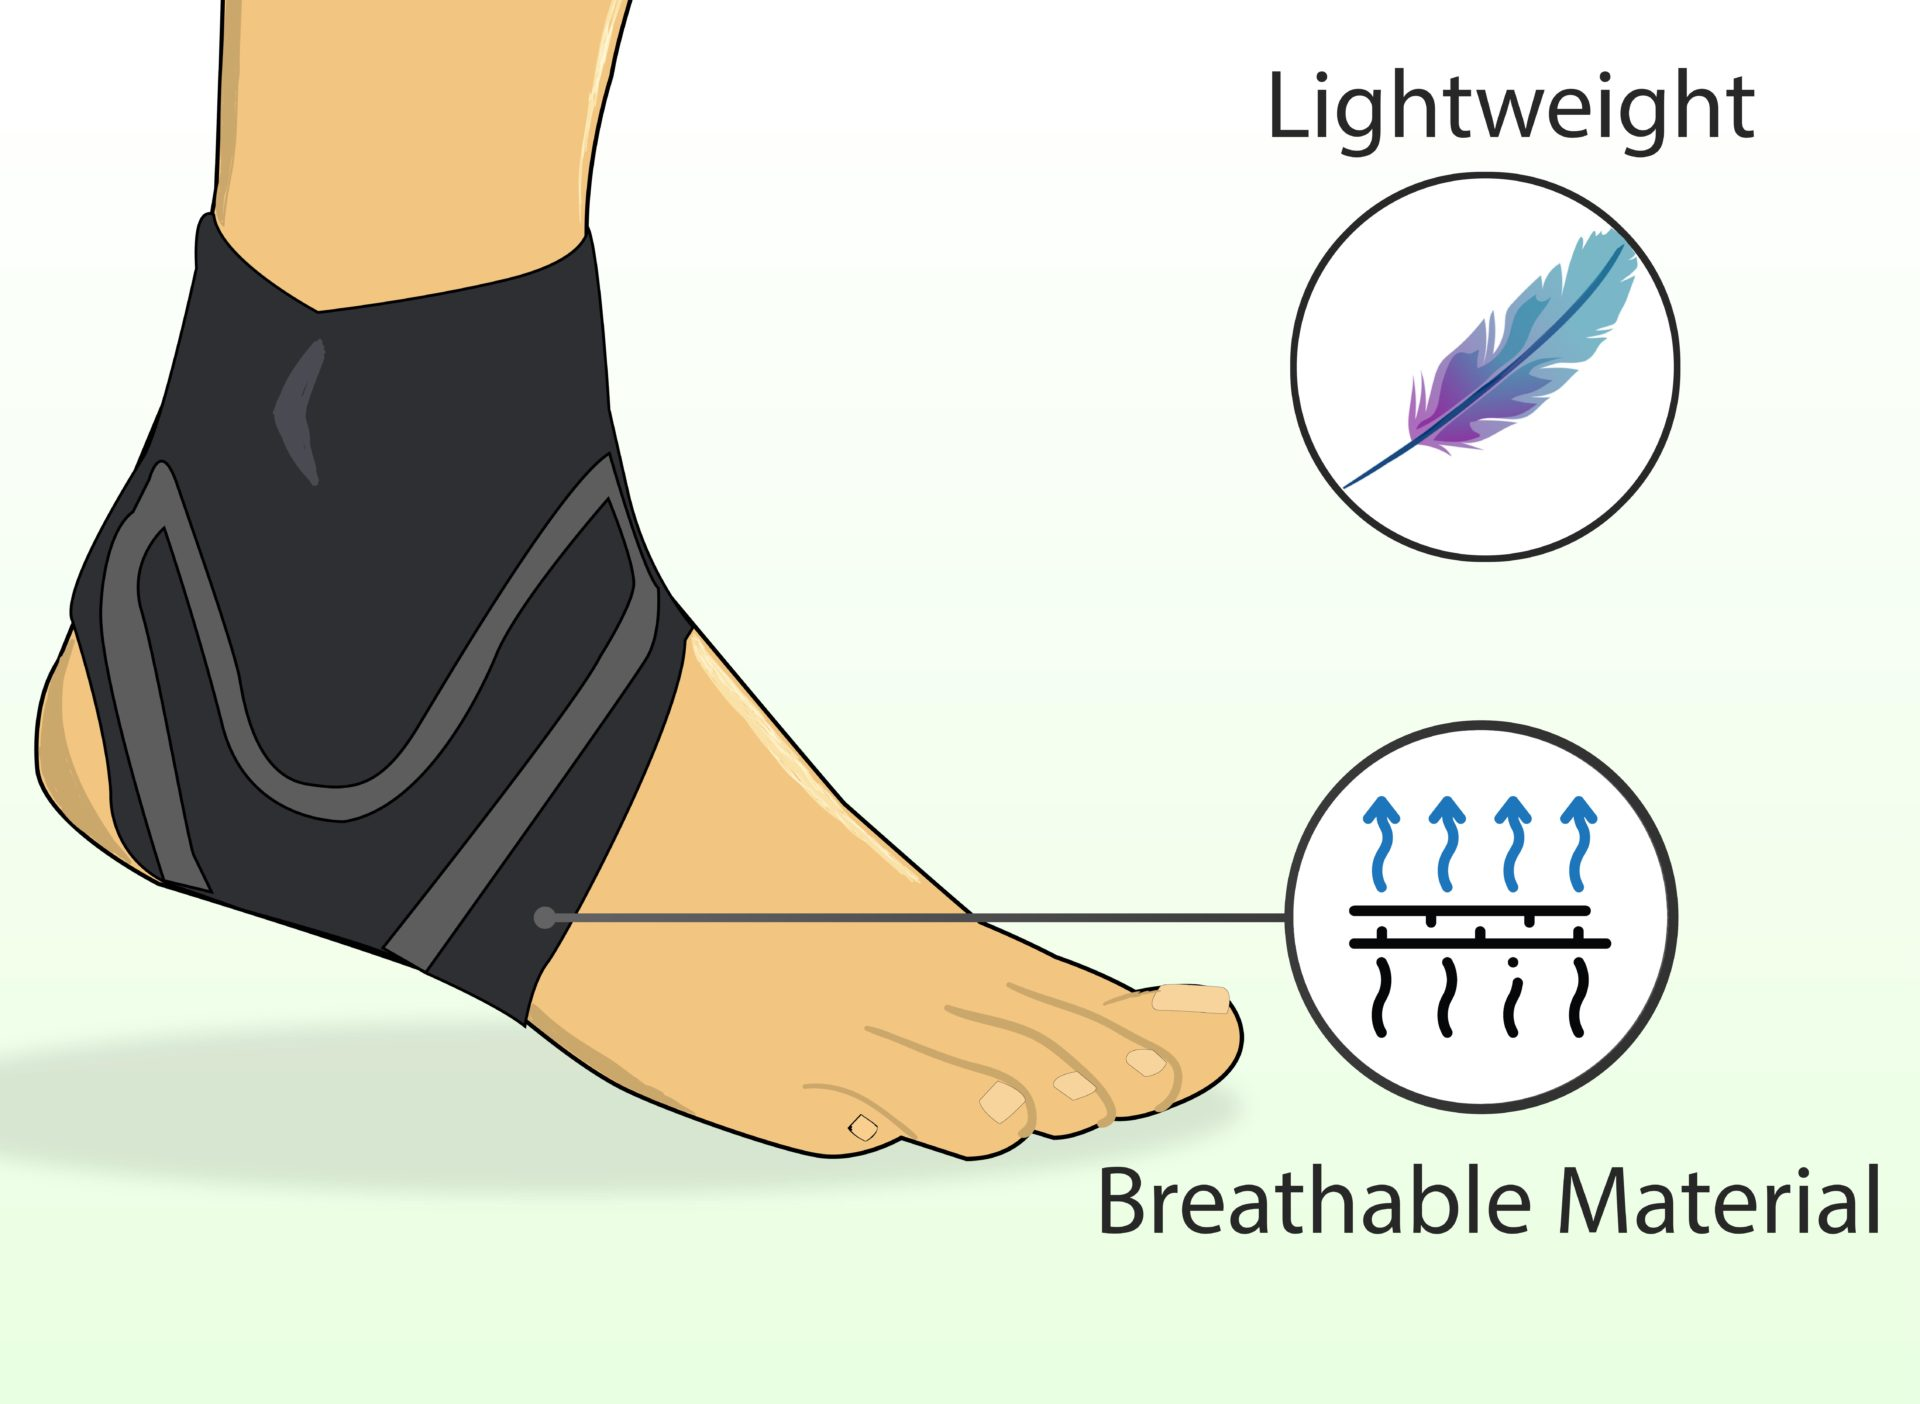 The brace should feel light and breathable.